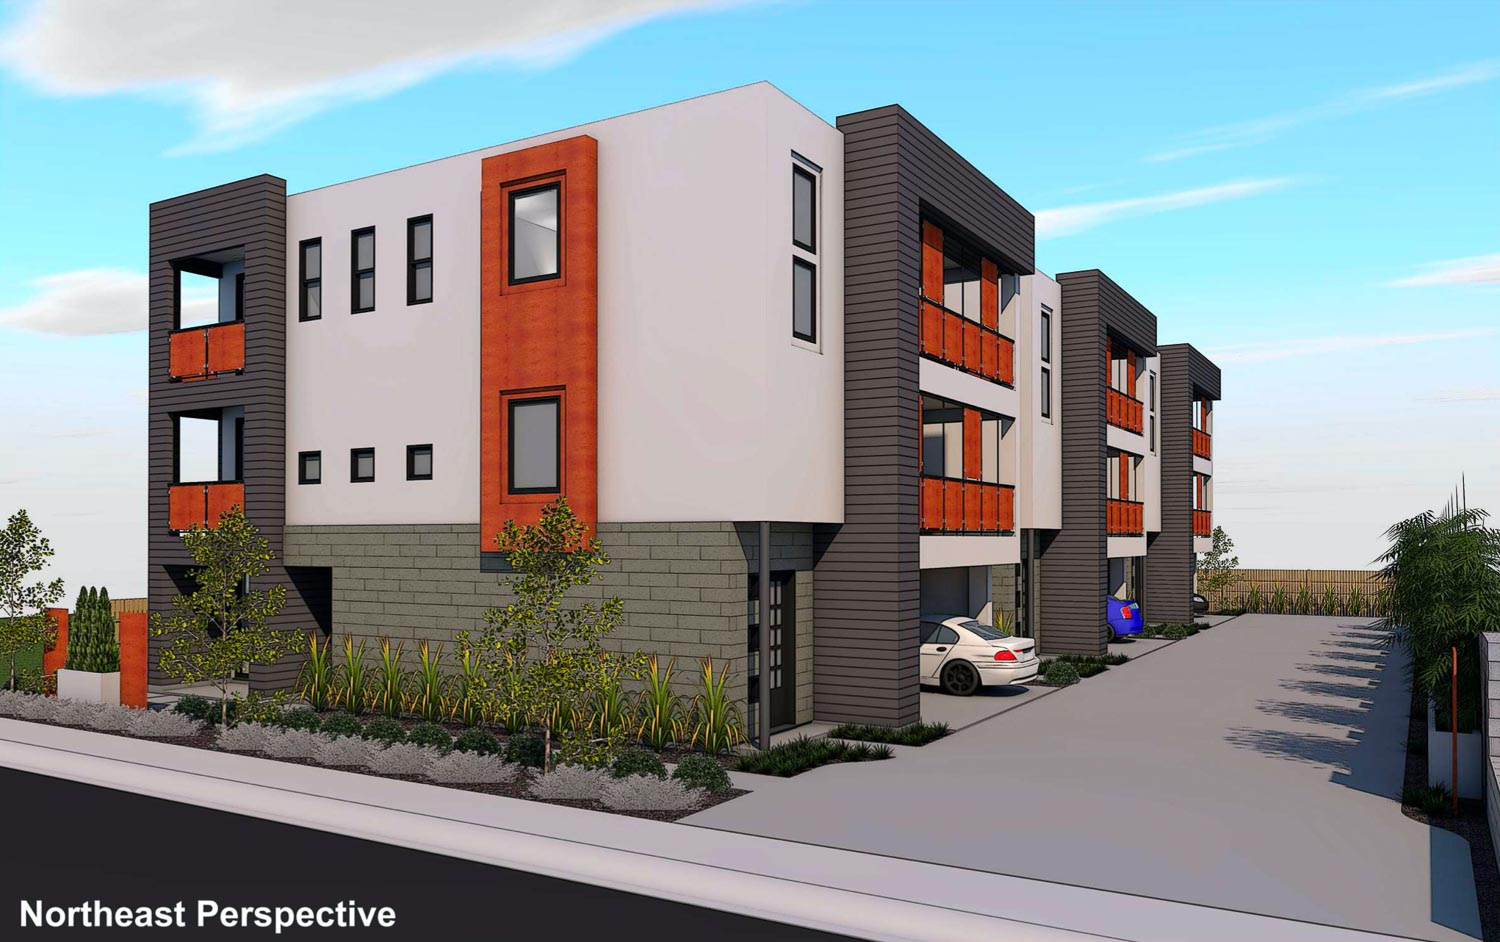 3040-3056 58th Street Northeast perspective, design by Studio 81